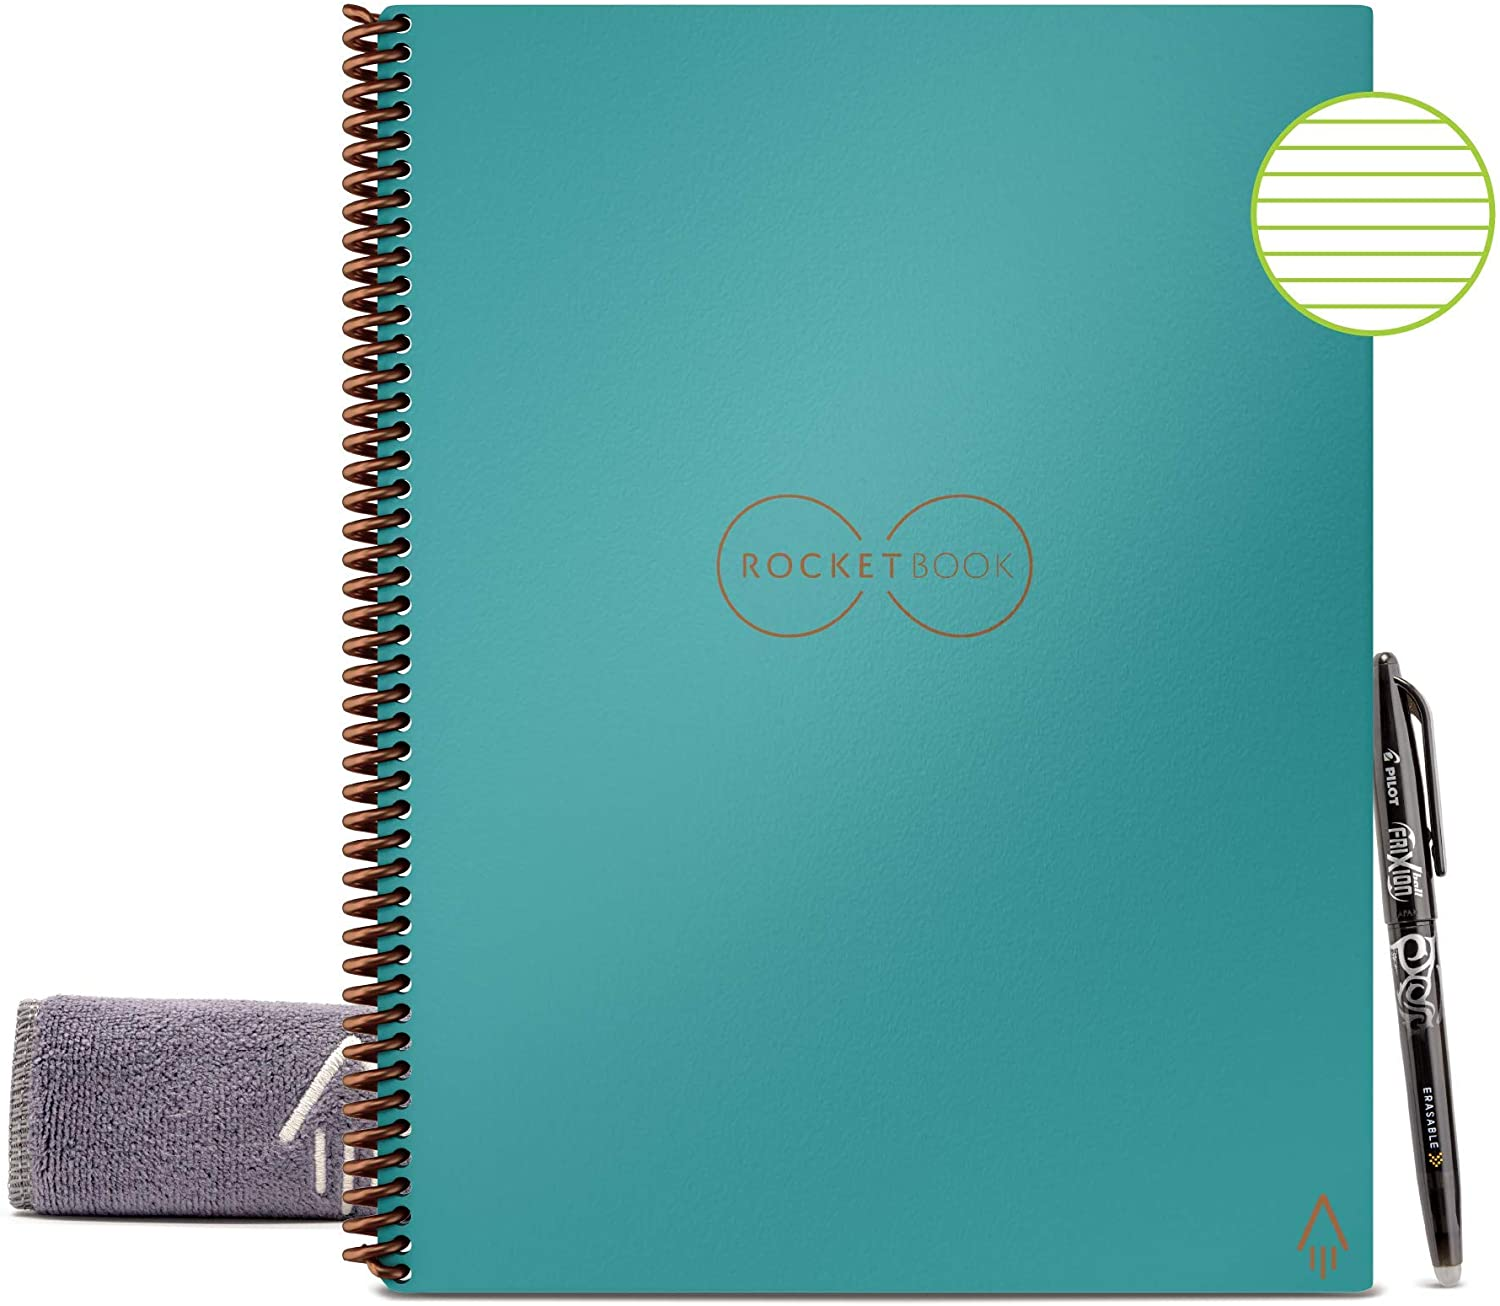 Where To Buy The Rocketbook Everlast Reusable Notebook